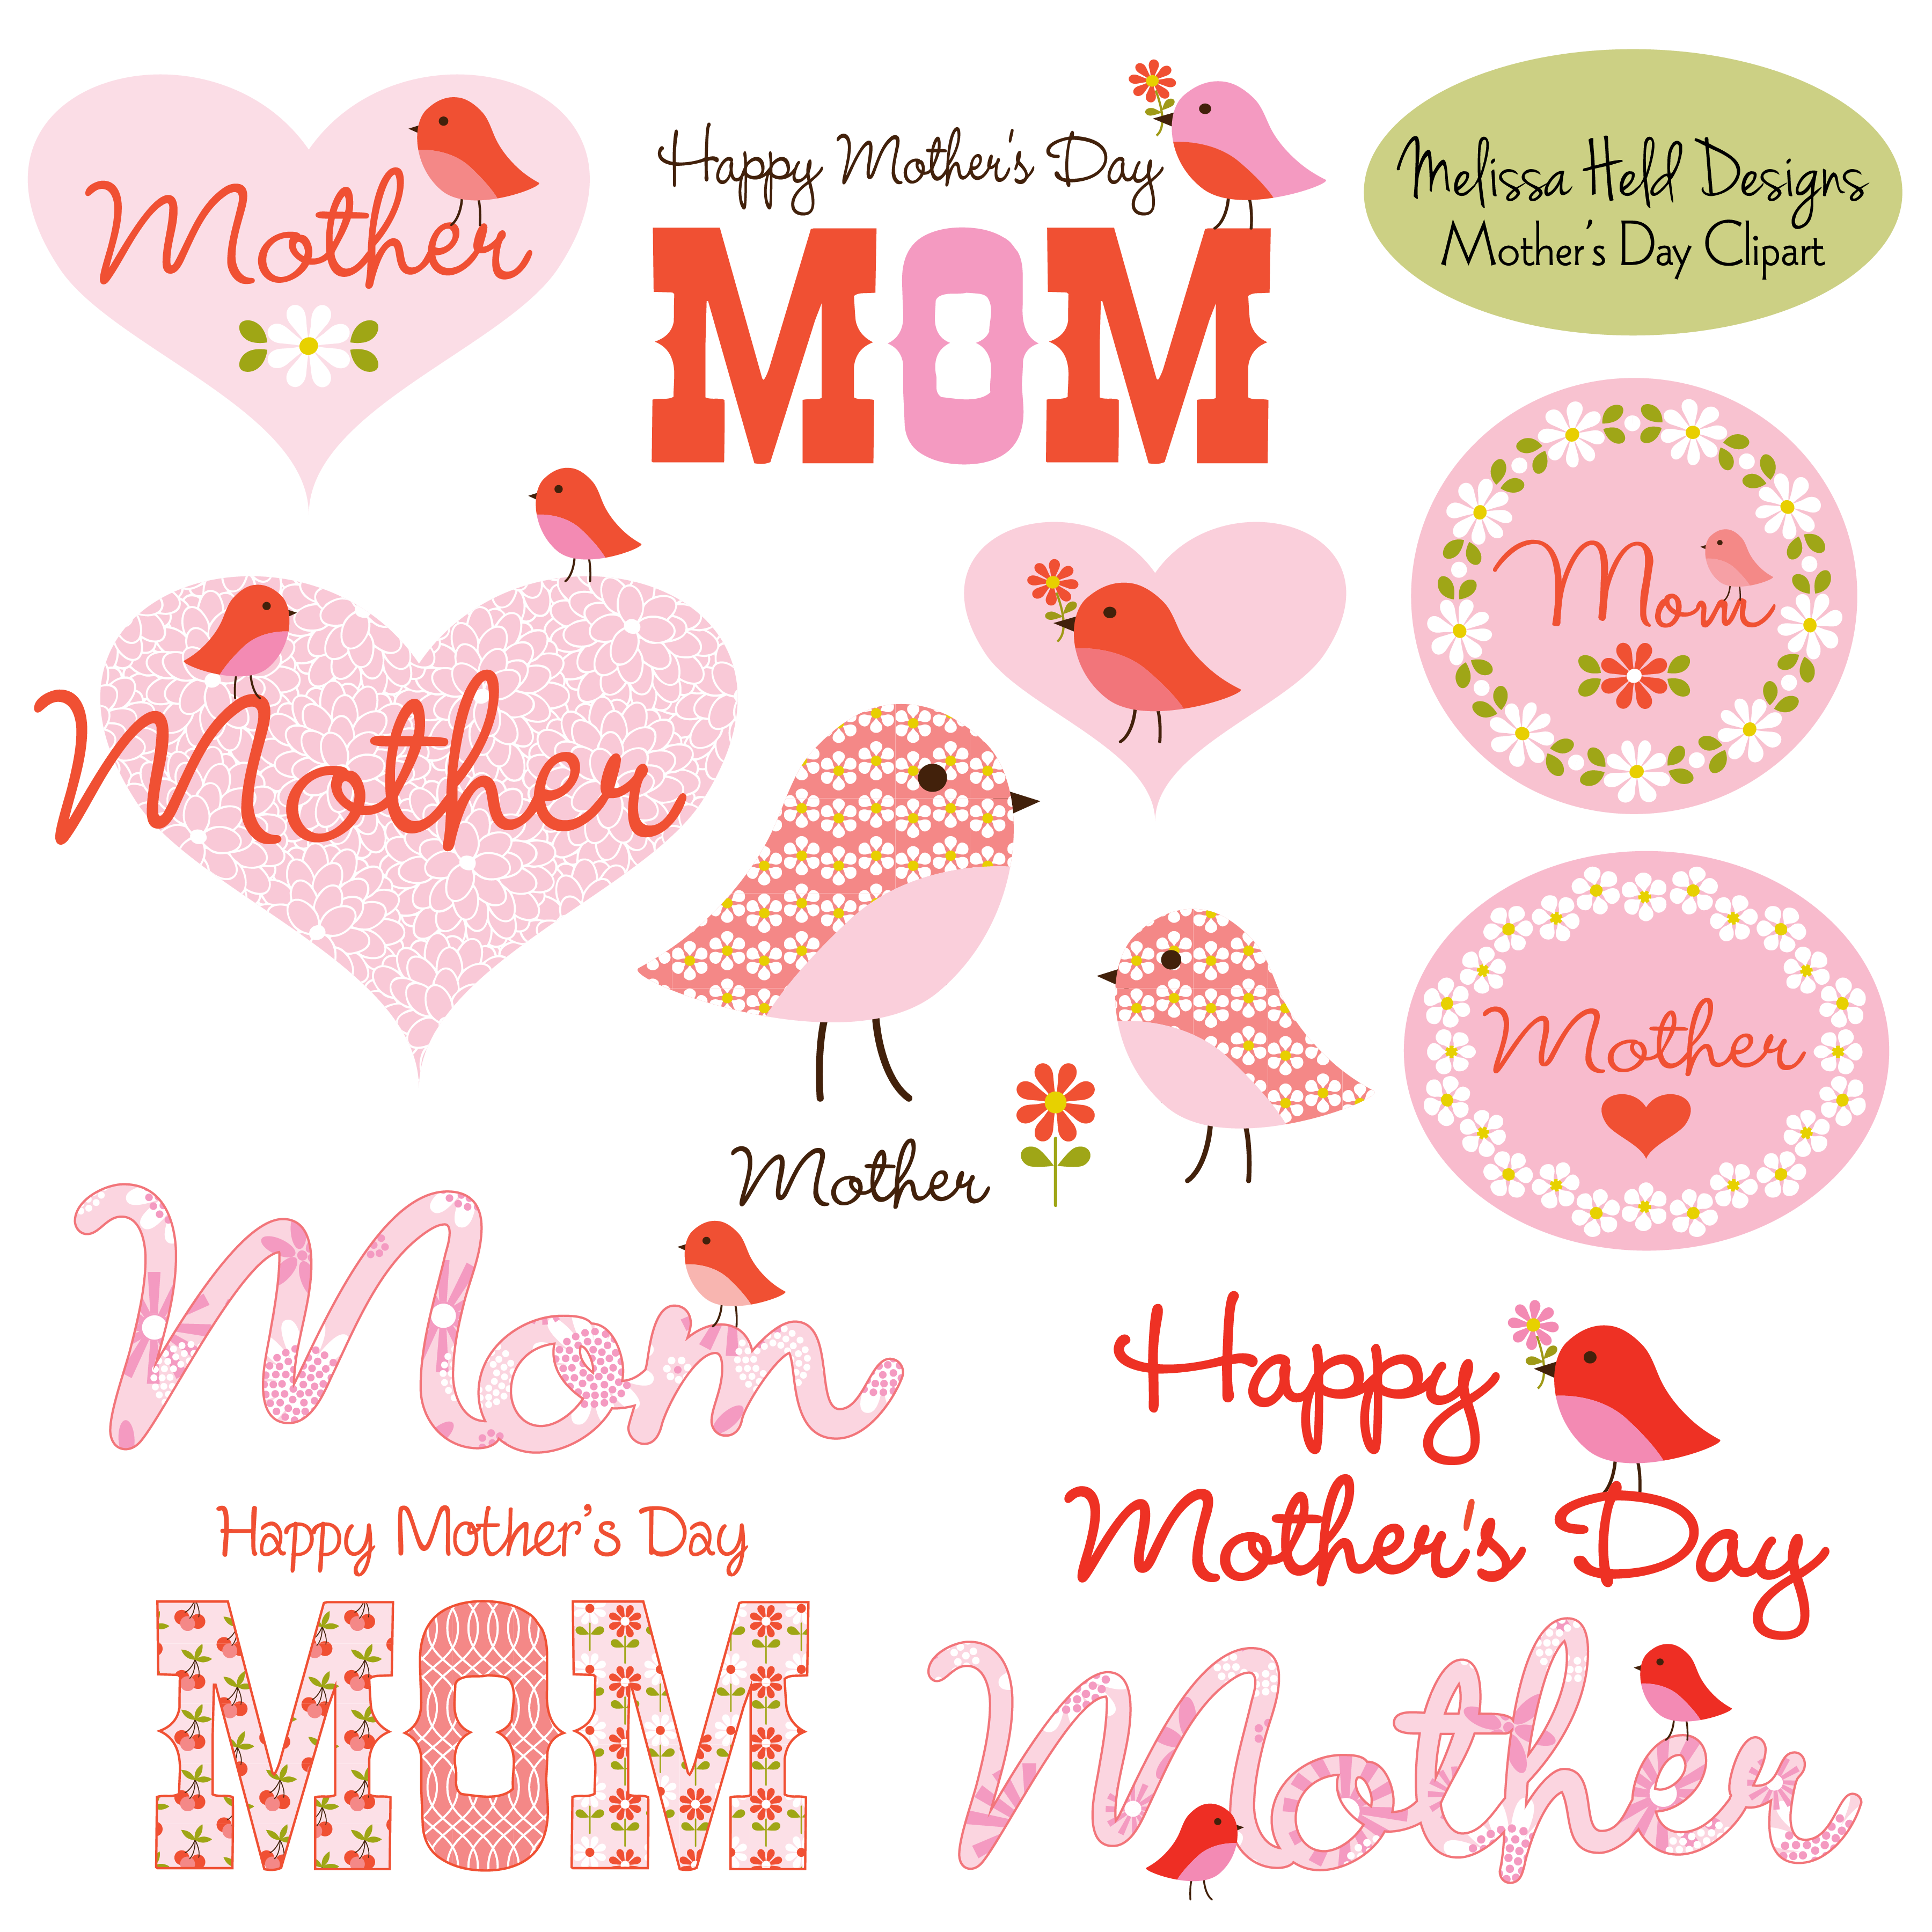 happy mother day quotes happy mothers day images mother day gifts mothers day [ 3600 x 3600 Pixel ]